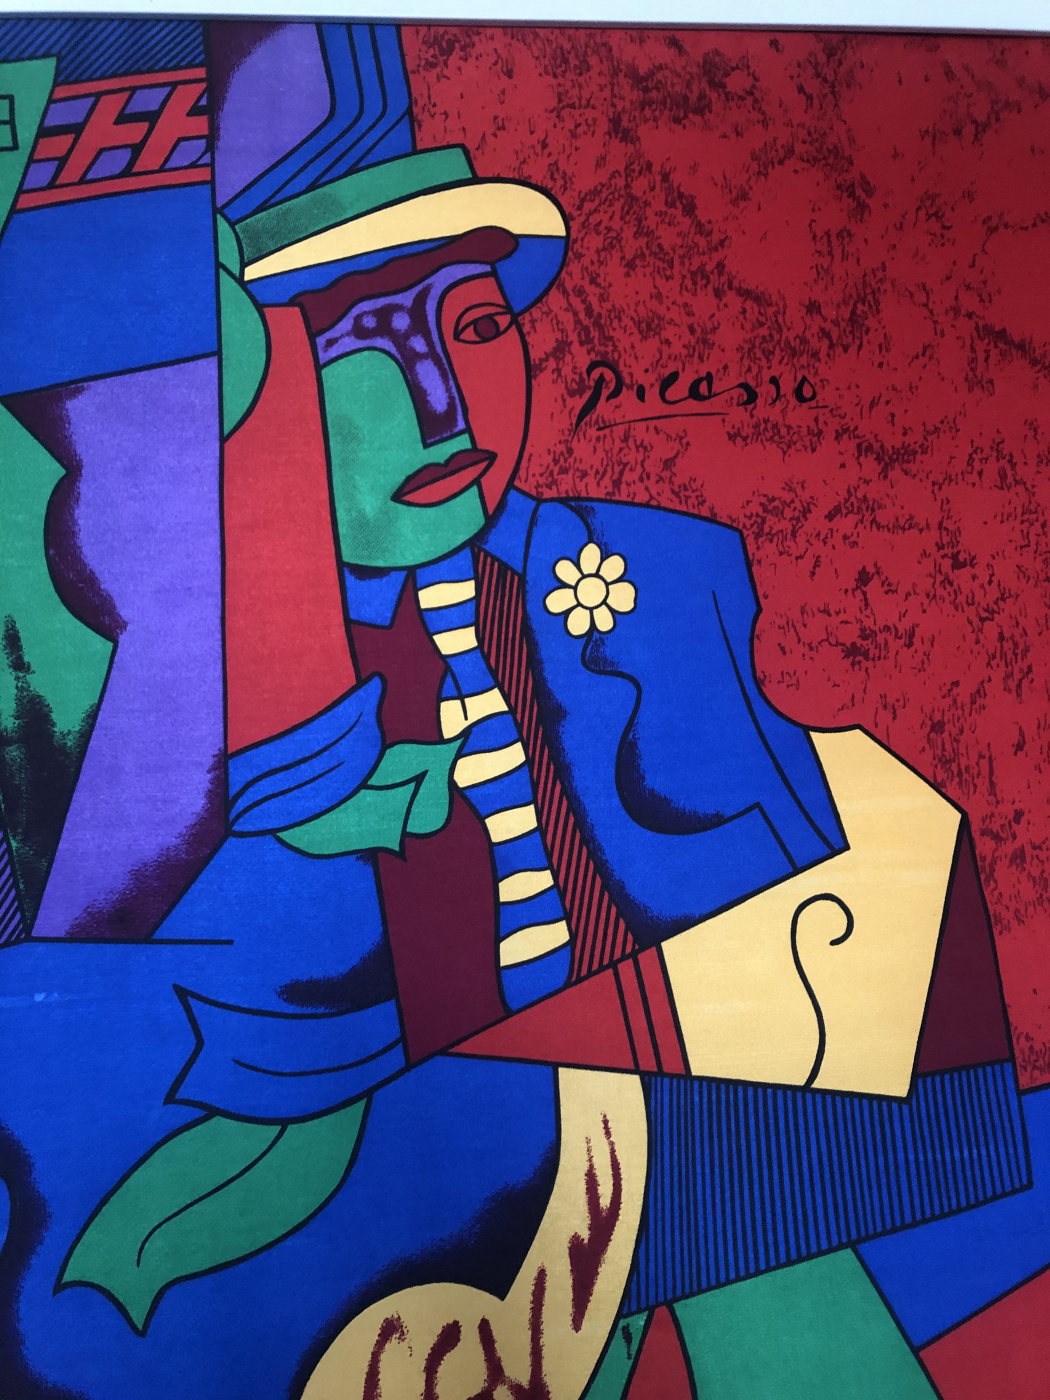 Helena. Copy of the painting by Pablo Picasso